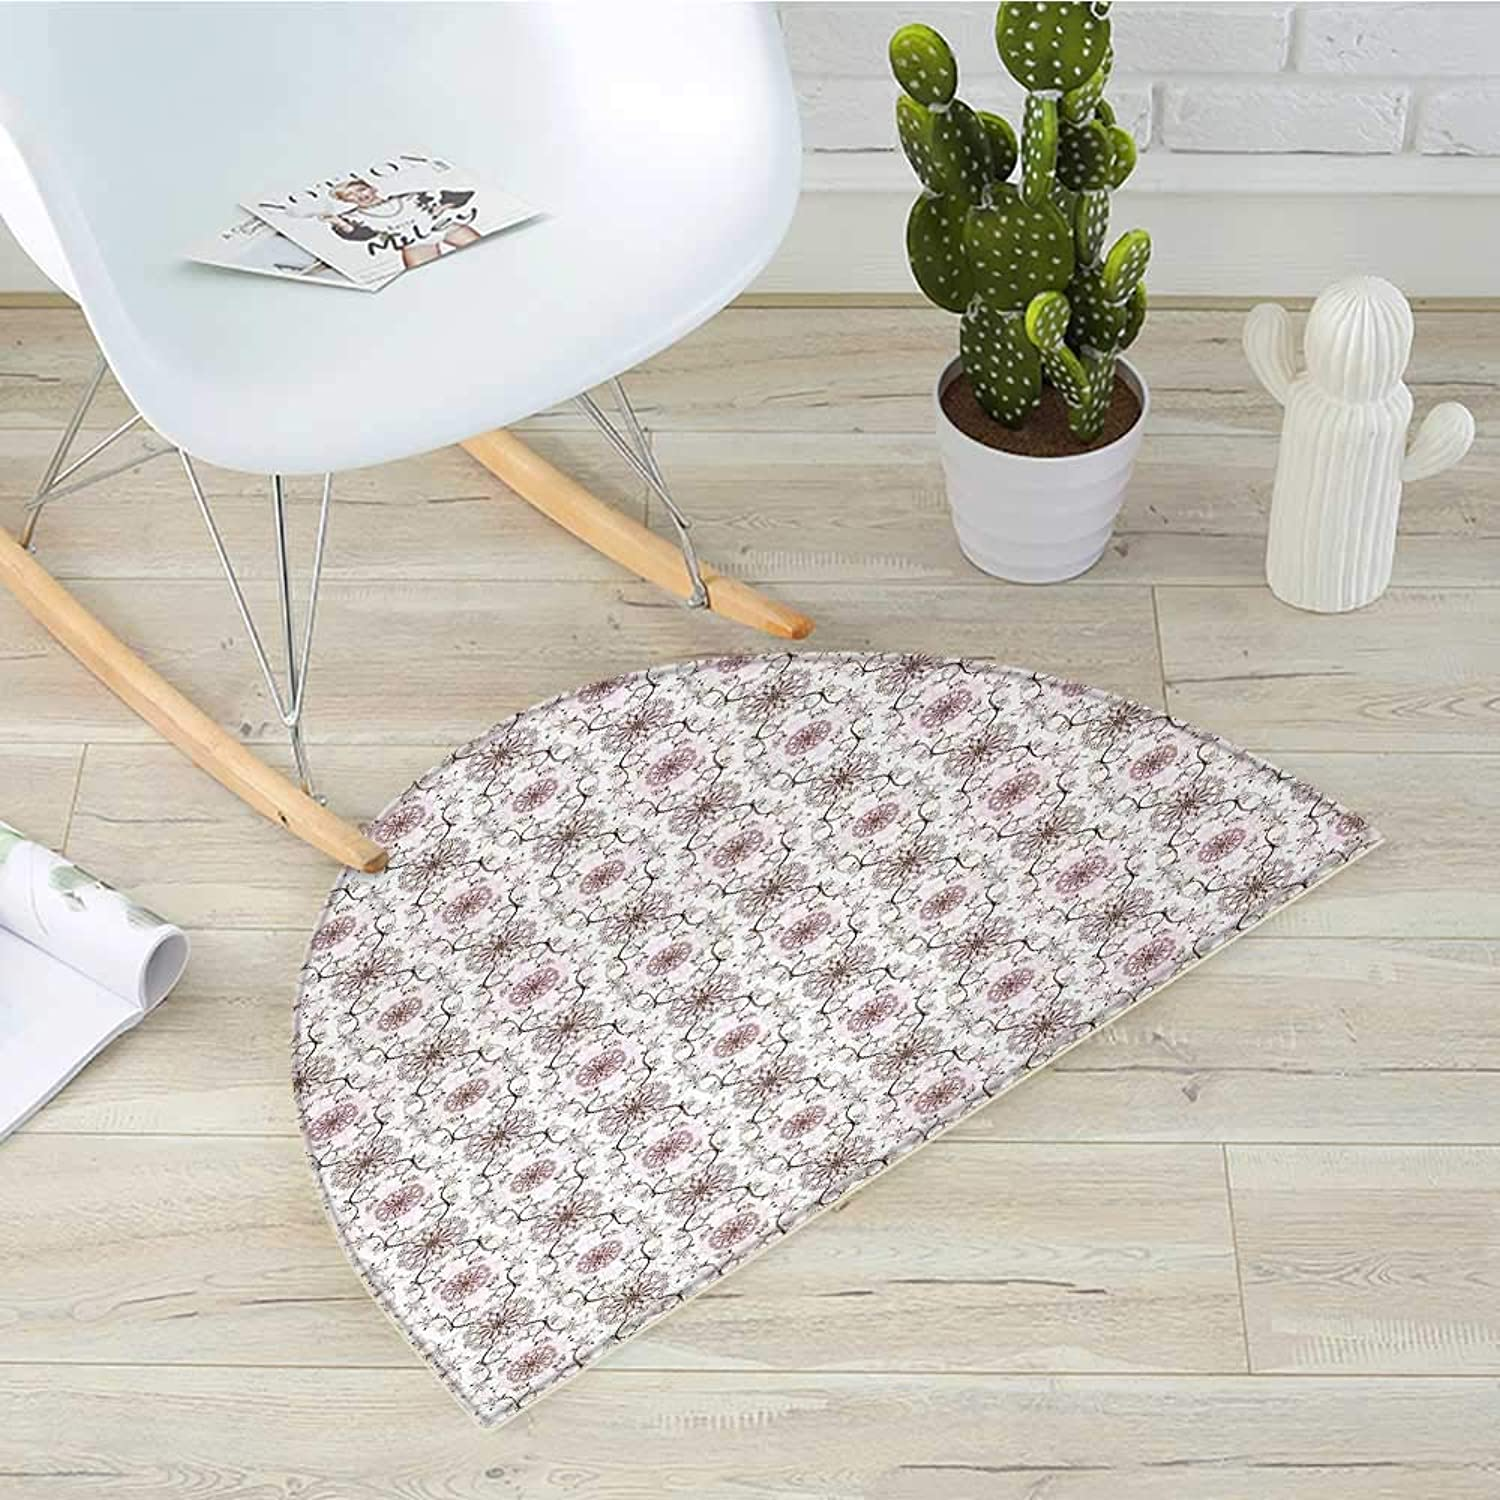 Romantic Semicircle Doormat Pastel colord Floral Composition with Flourishing Tree Branches Heart Shapes Halfmoon doormats H 19.7  xD 31.5  Brown Pale Pink